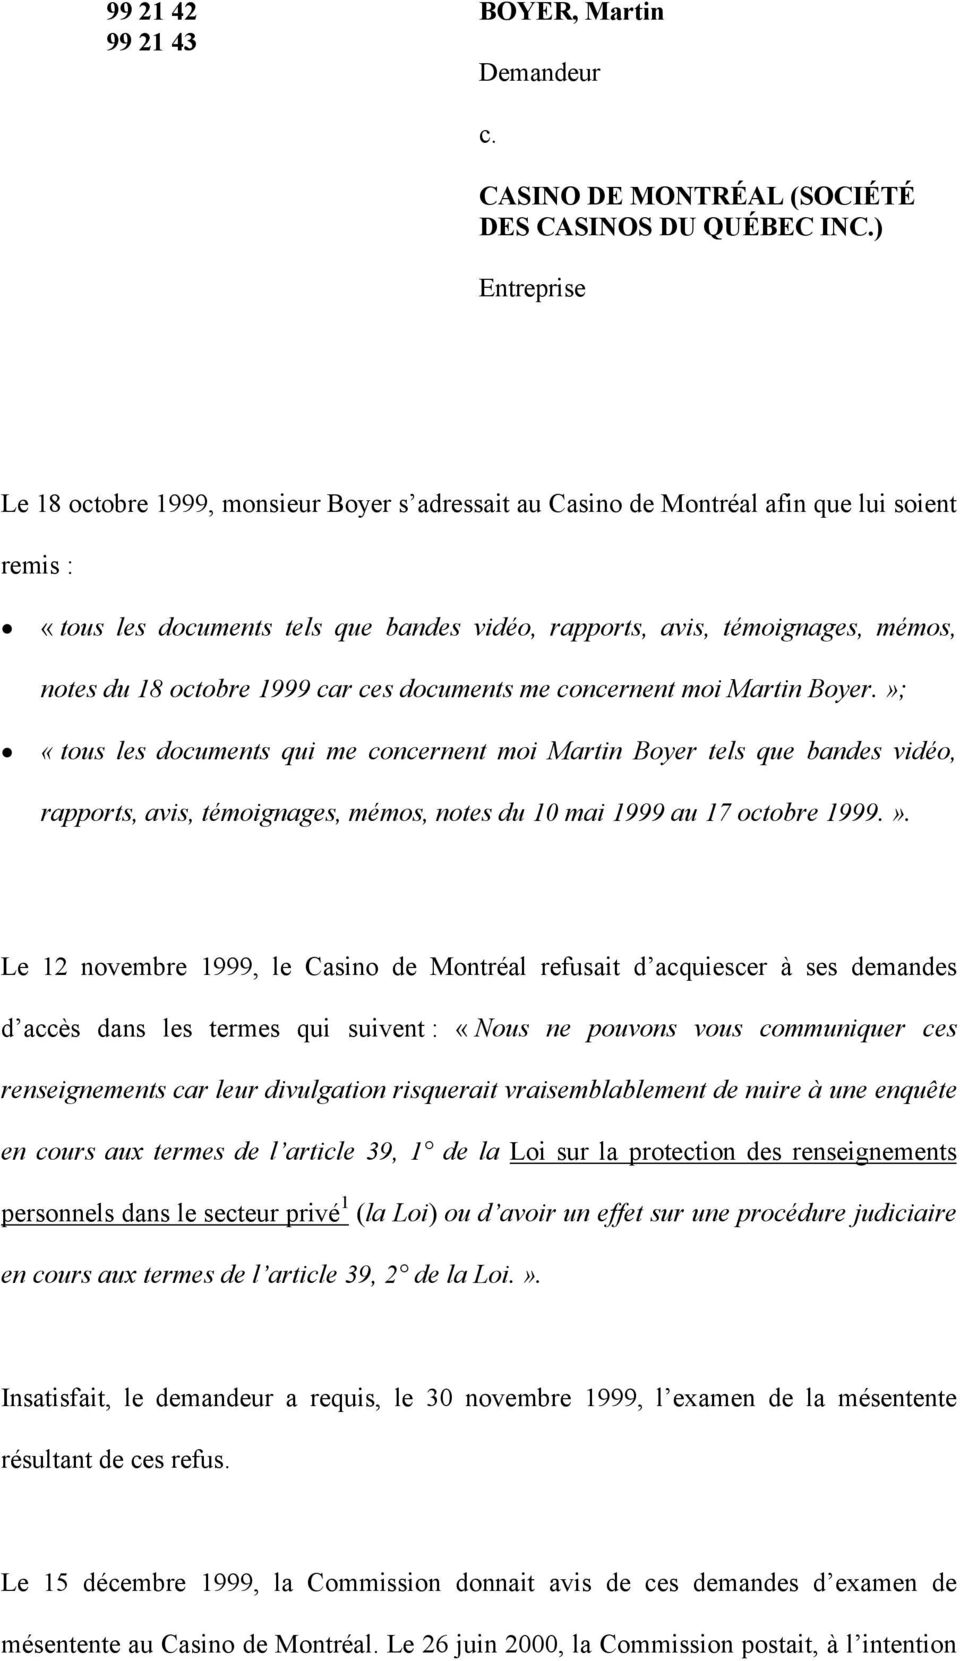 18 octobre 1999 car ces documents me concernent moi Martin Boyer.